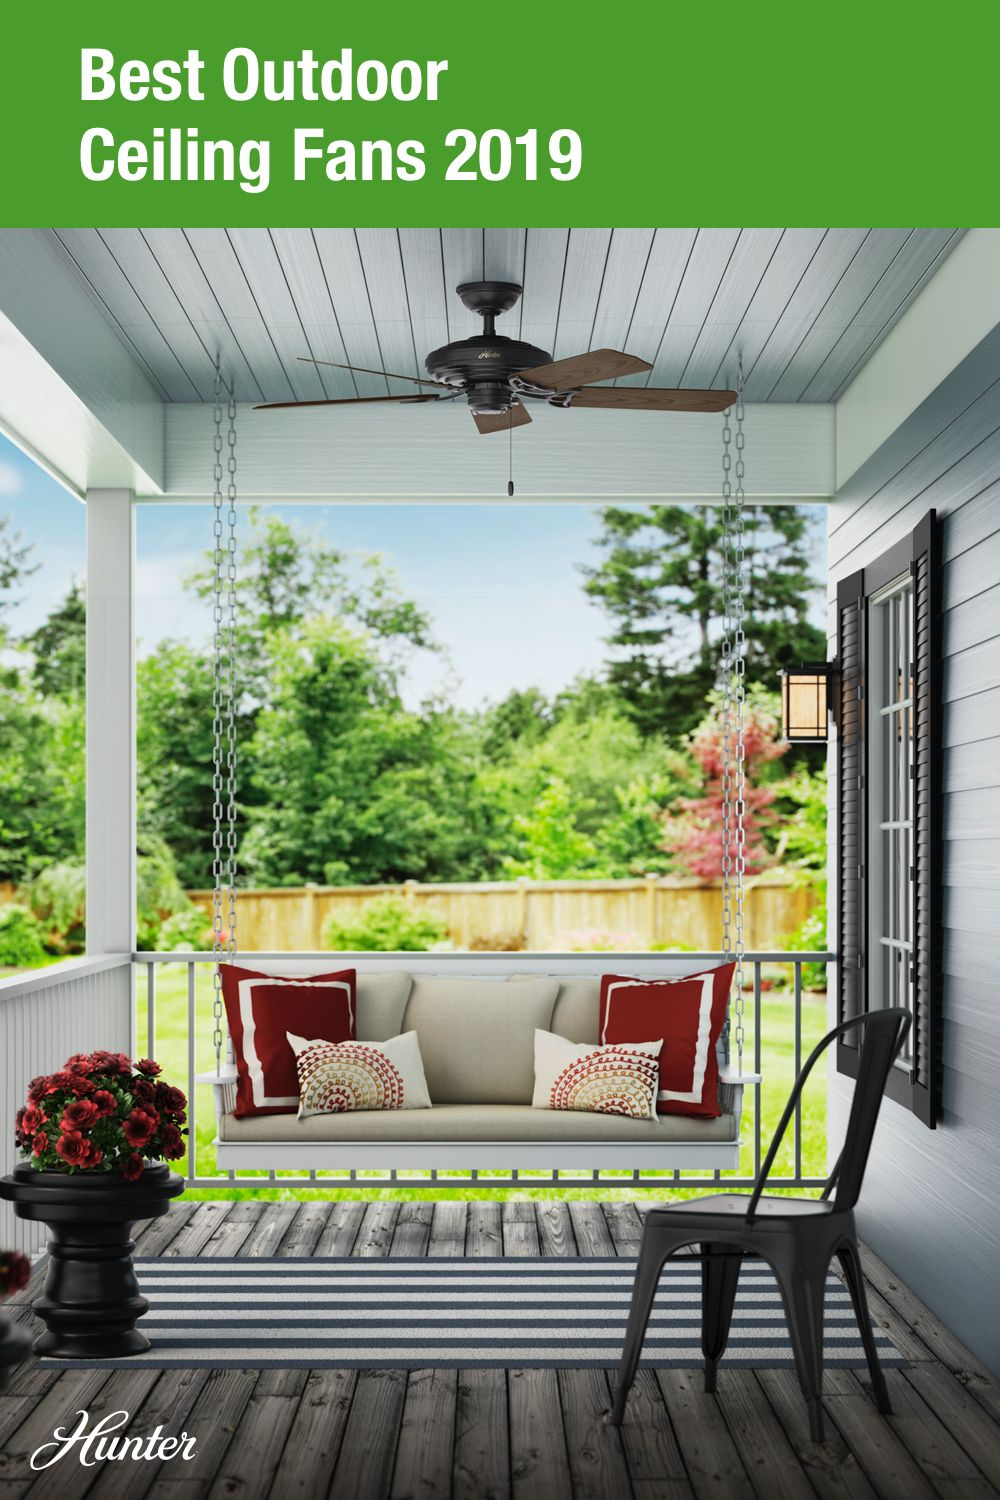 Best Outdoor Ceiling Fans Outdoor Patio Ideas Hunter Fan Blog Best Outdoor Ceiling Fans Outdoor Ceiling Fans Outdoor Sunroom